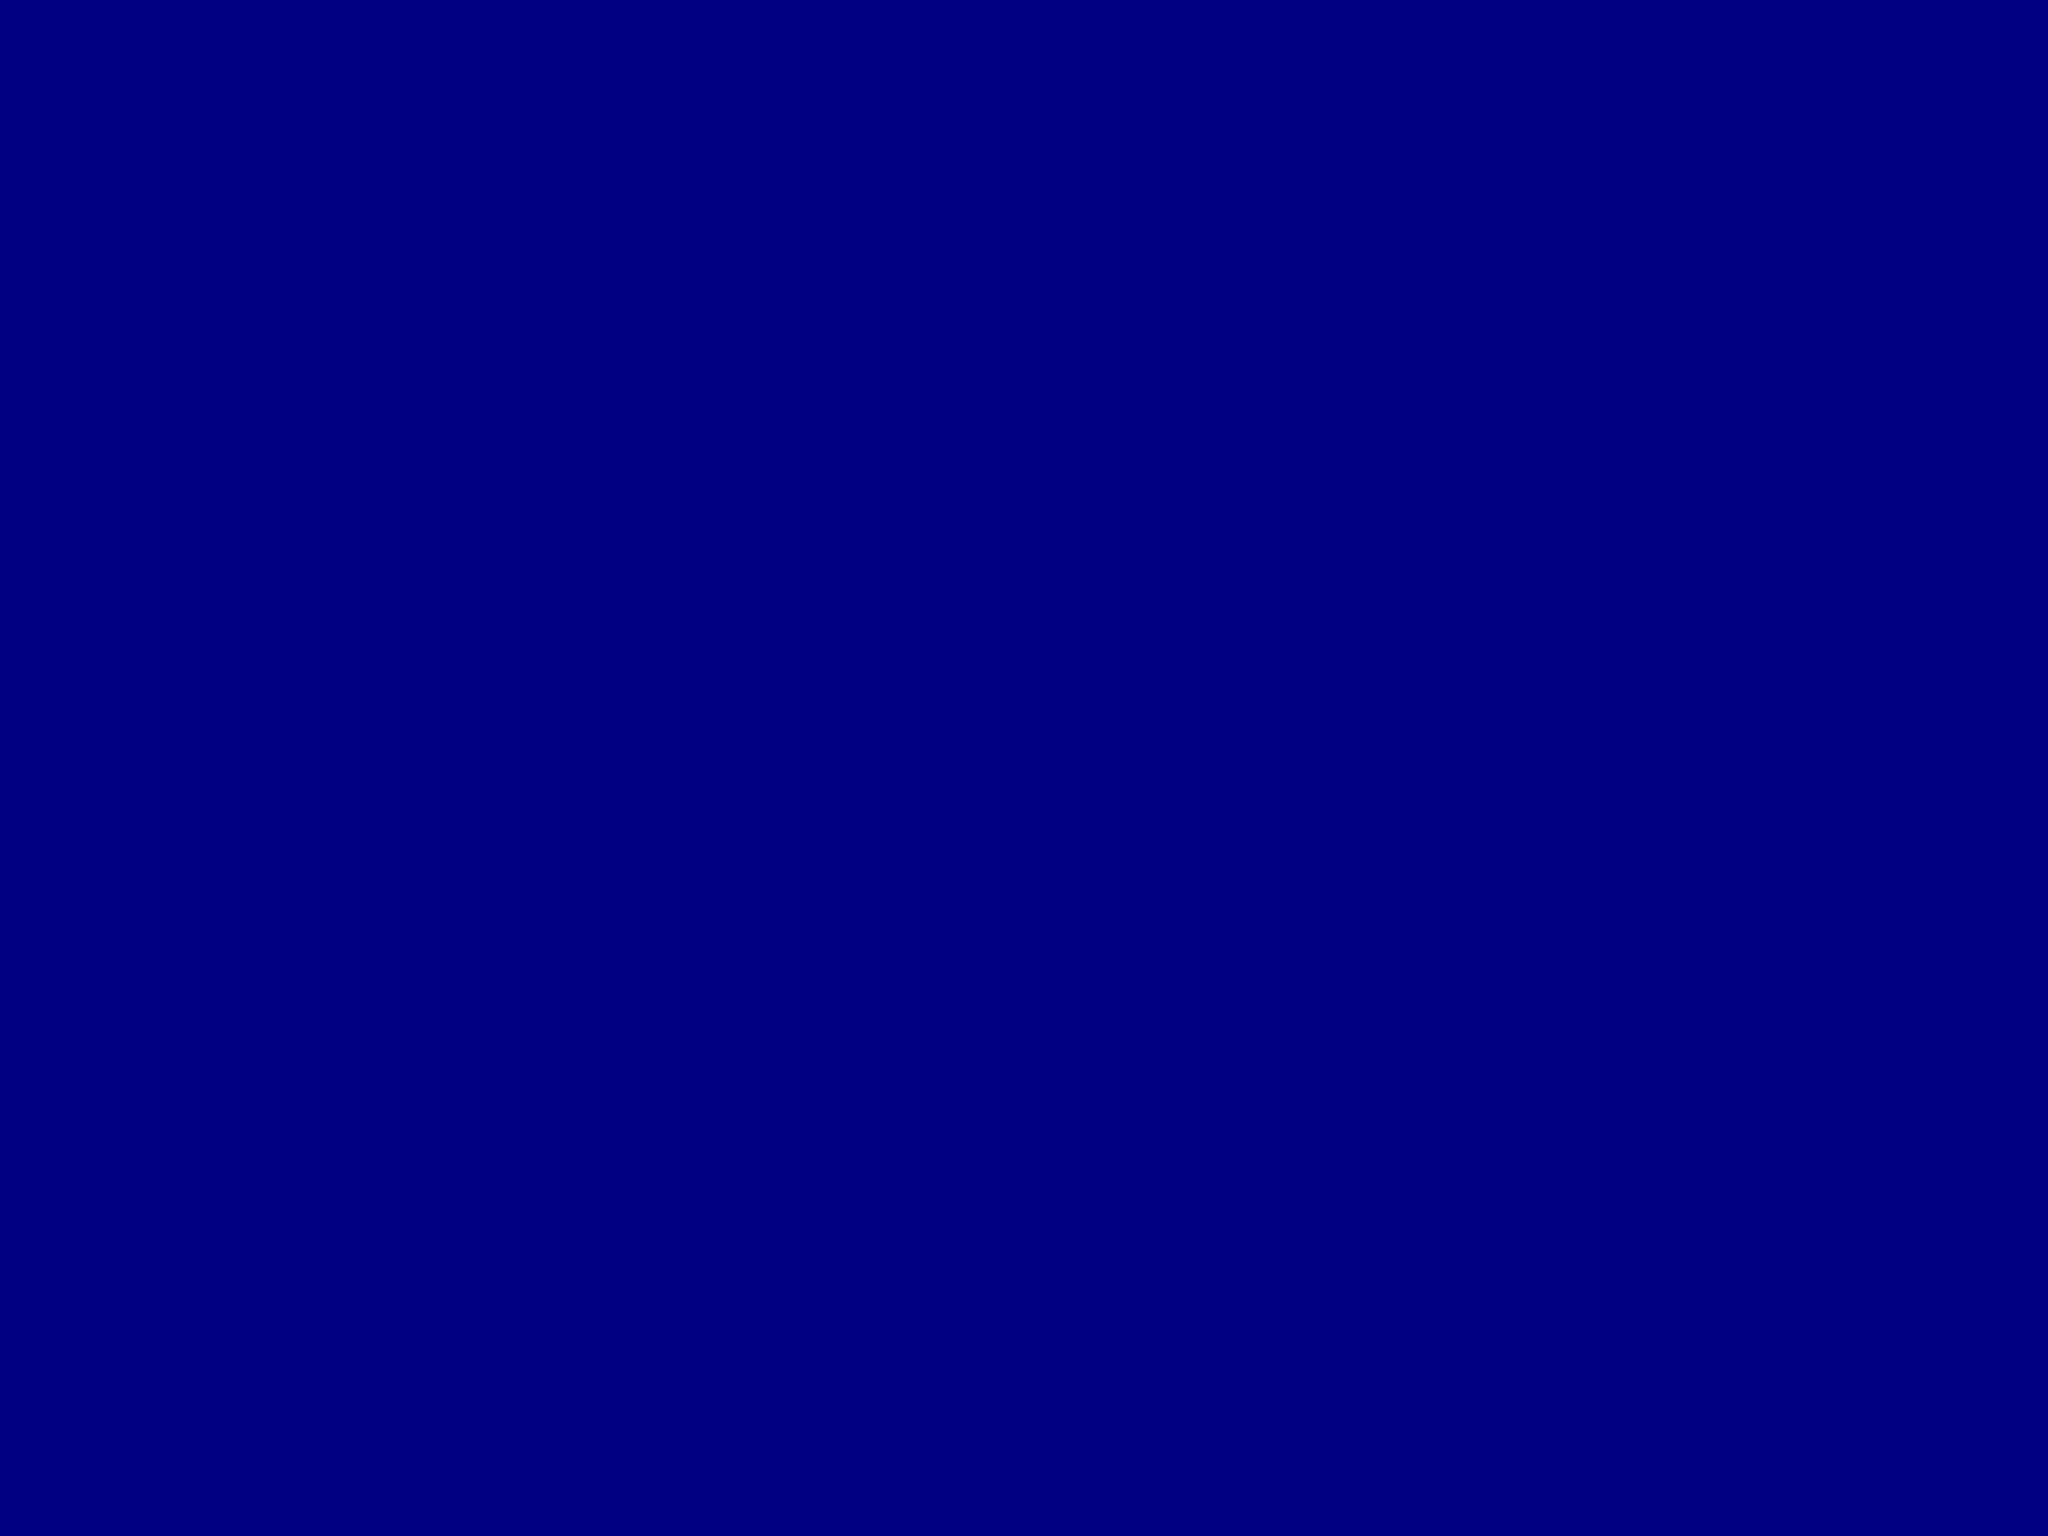 Solid Navy Blue Backgrounds Images amp Pictures   Becuo 2048x1536